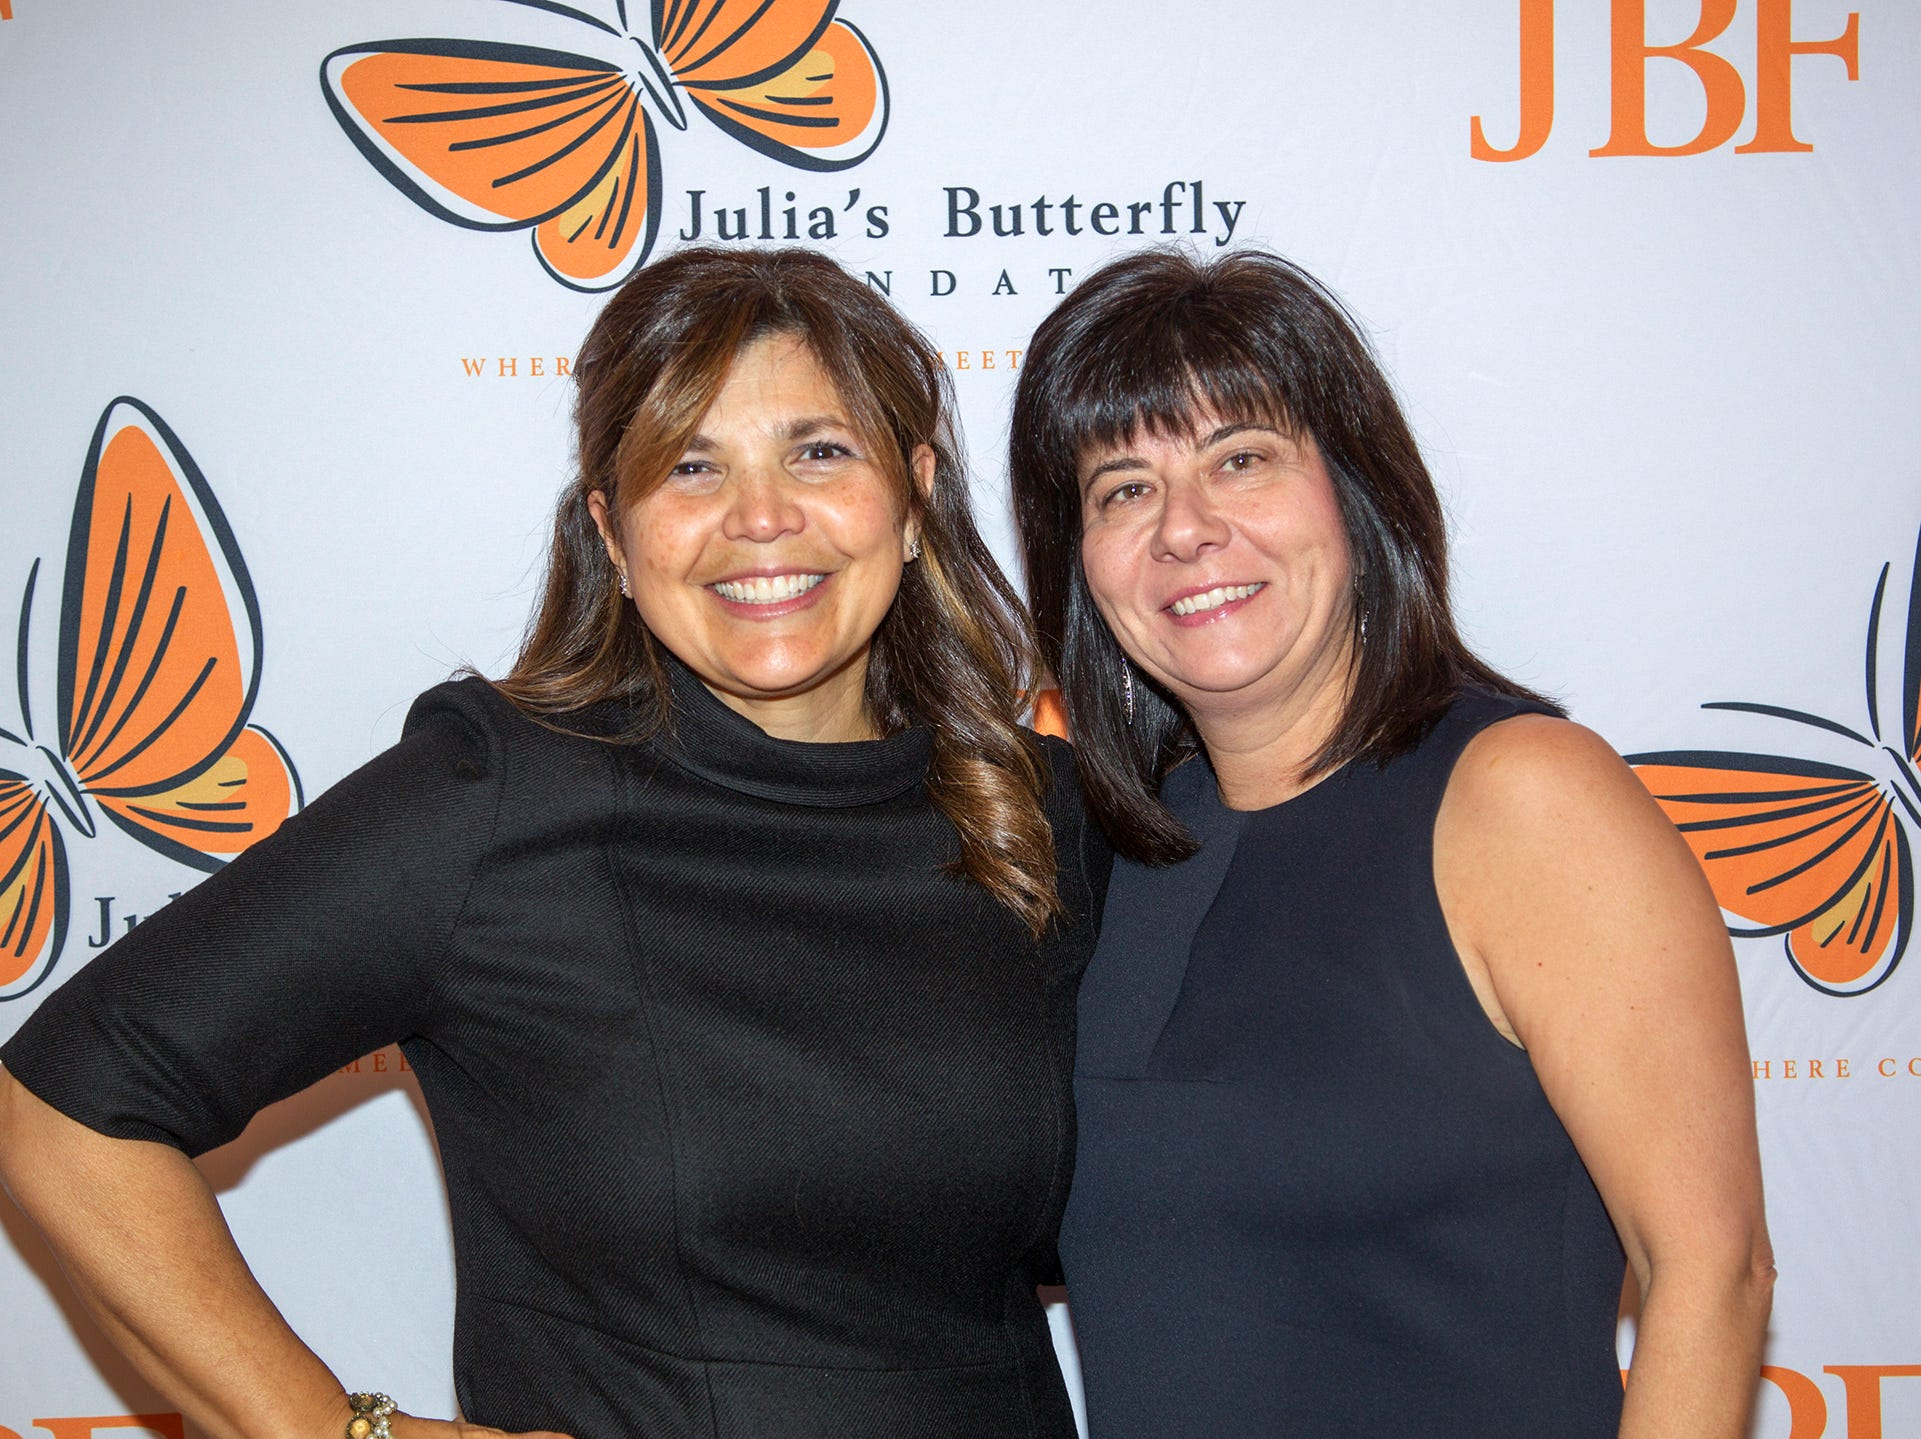 Maria Mudrick, Elizabeth Cultraro. The 13th annual Julia's Butterfly Foundation Ball at Macaluso's in Hawthrorne. Julia's Butterfly Foundation is a volunteer 501 (c) 3 organization whose mission is to provide assistance to families of chronically and terminally ill children to improve their quality of life. 11/11/2018